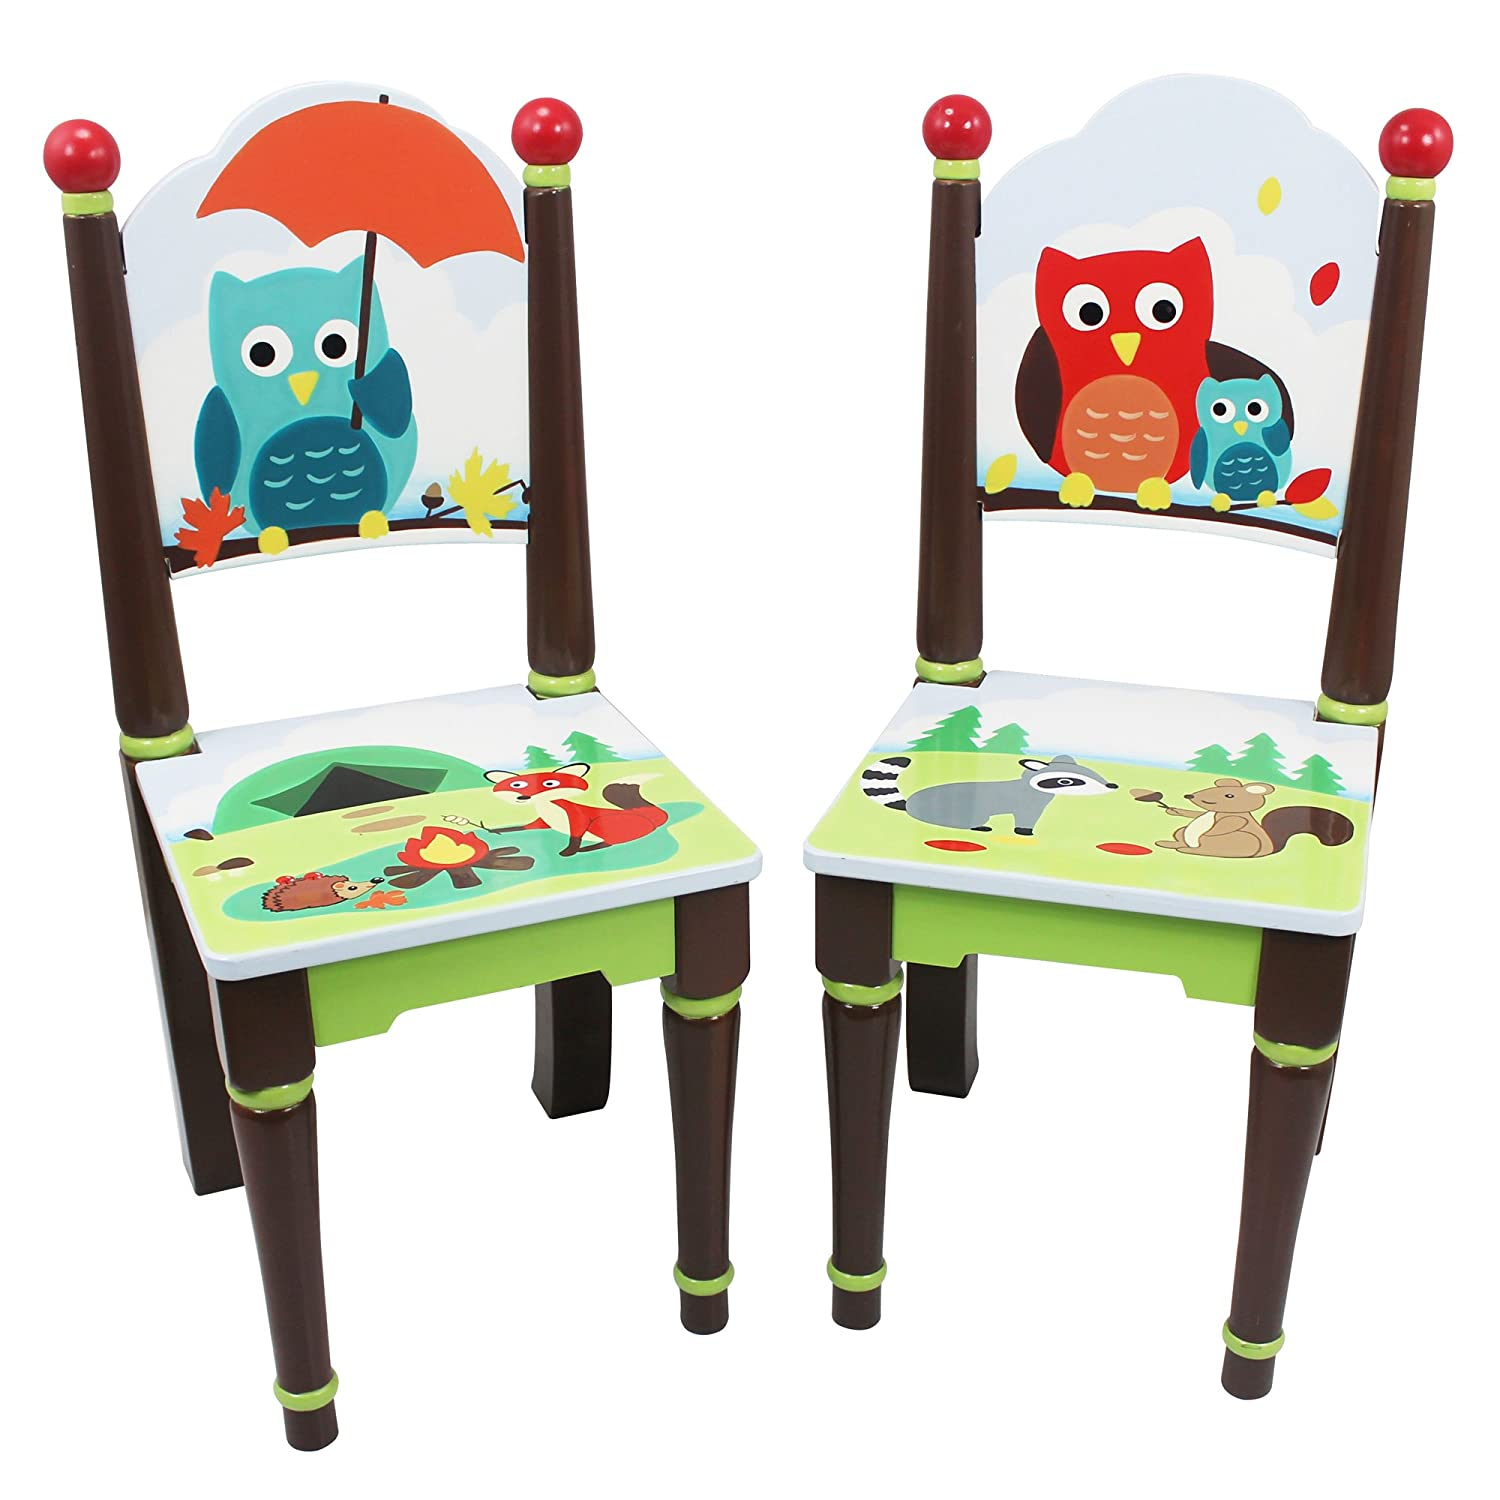 Fantasy Fields - Dinosaur Kingdom Thematic Kids Wooden 2 Chairs Set | Imagination Inspiring Hand Crafted & Hand Painted Details Non-Toxic, Lead Free Water-based Paint TD-0079A/2